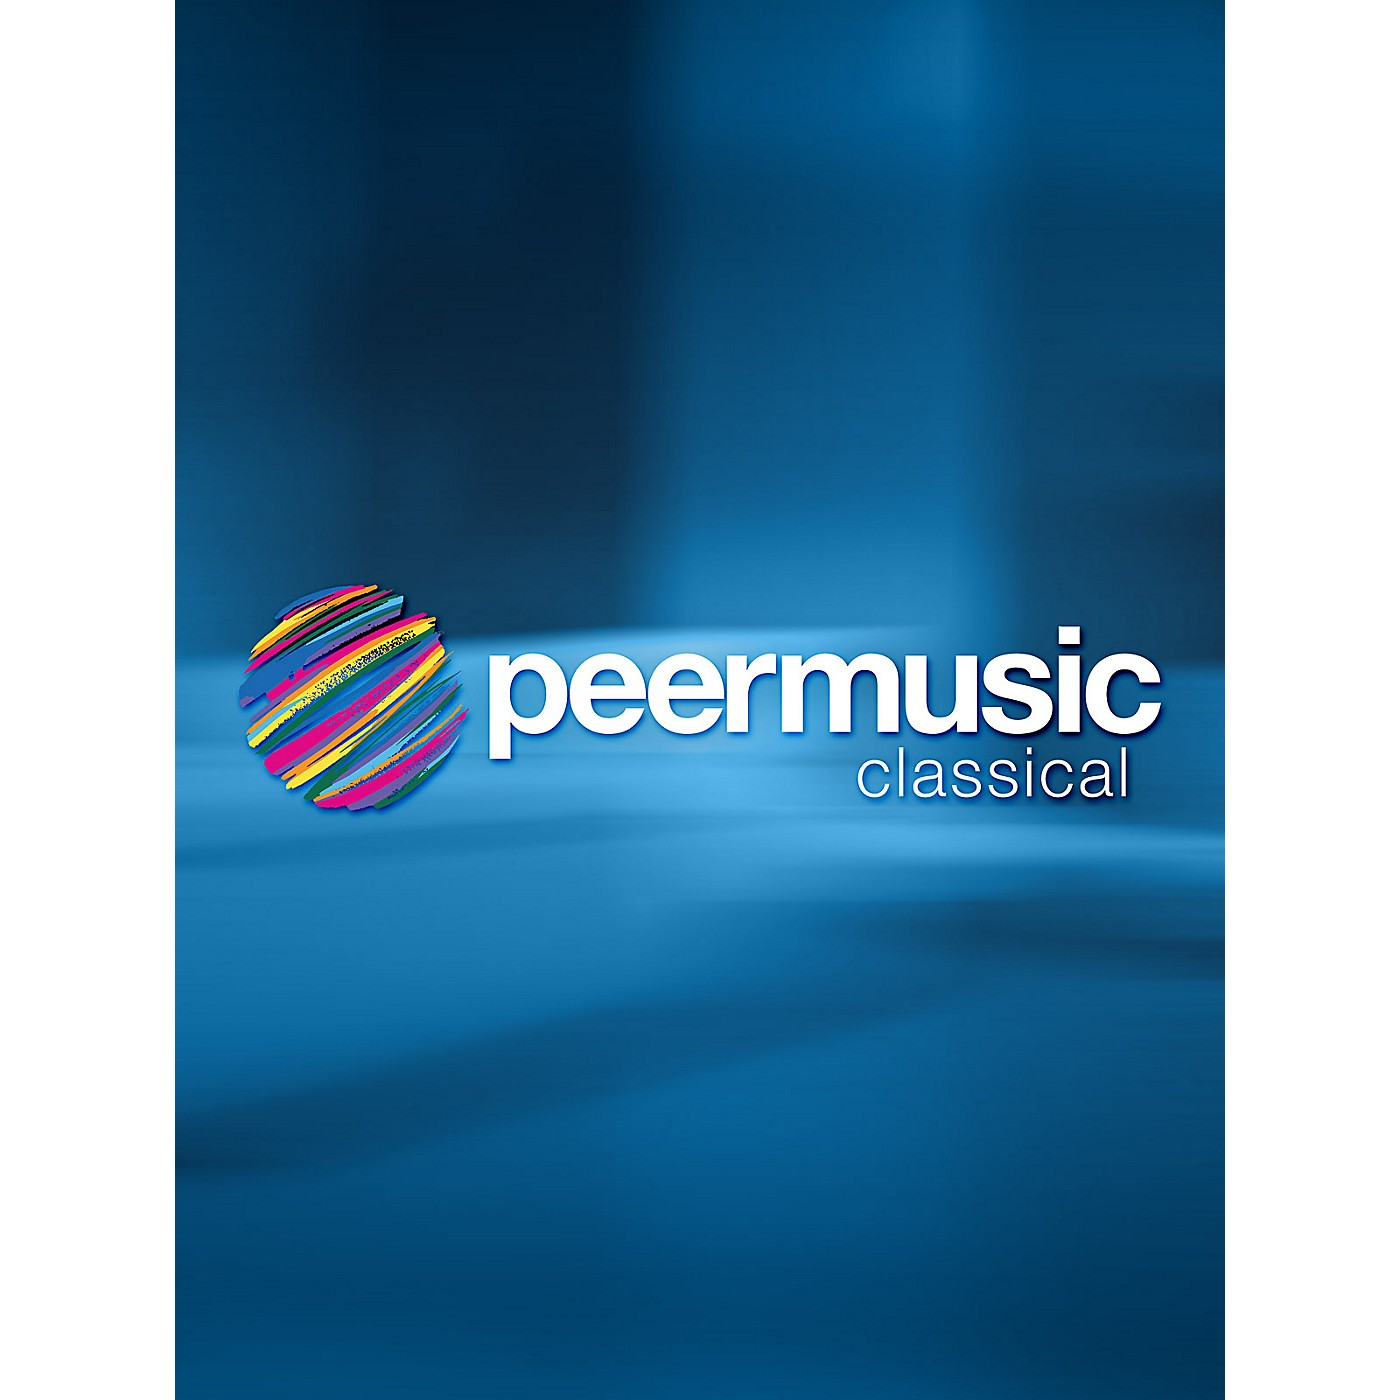 Peer Music 2 Canciones (for Medium Voice and Piano) Peermusic Classical Series Composed by Blas Galindo thumbnail